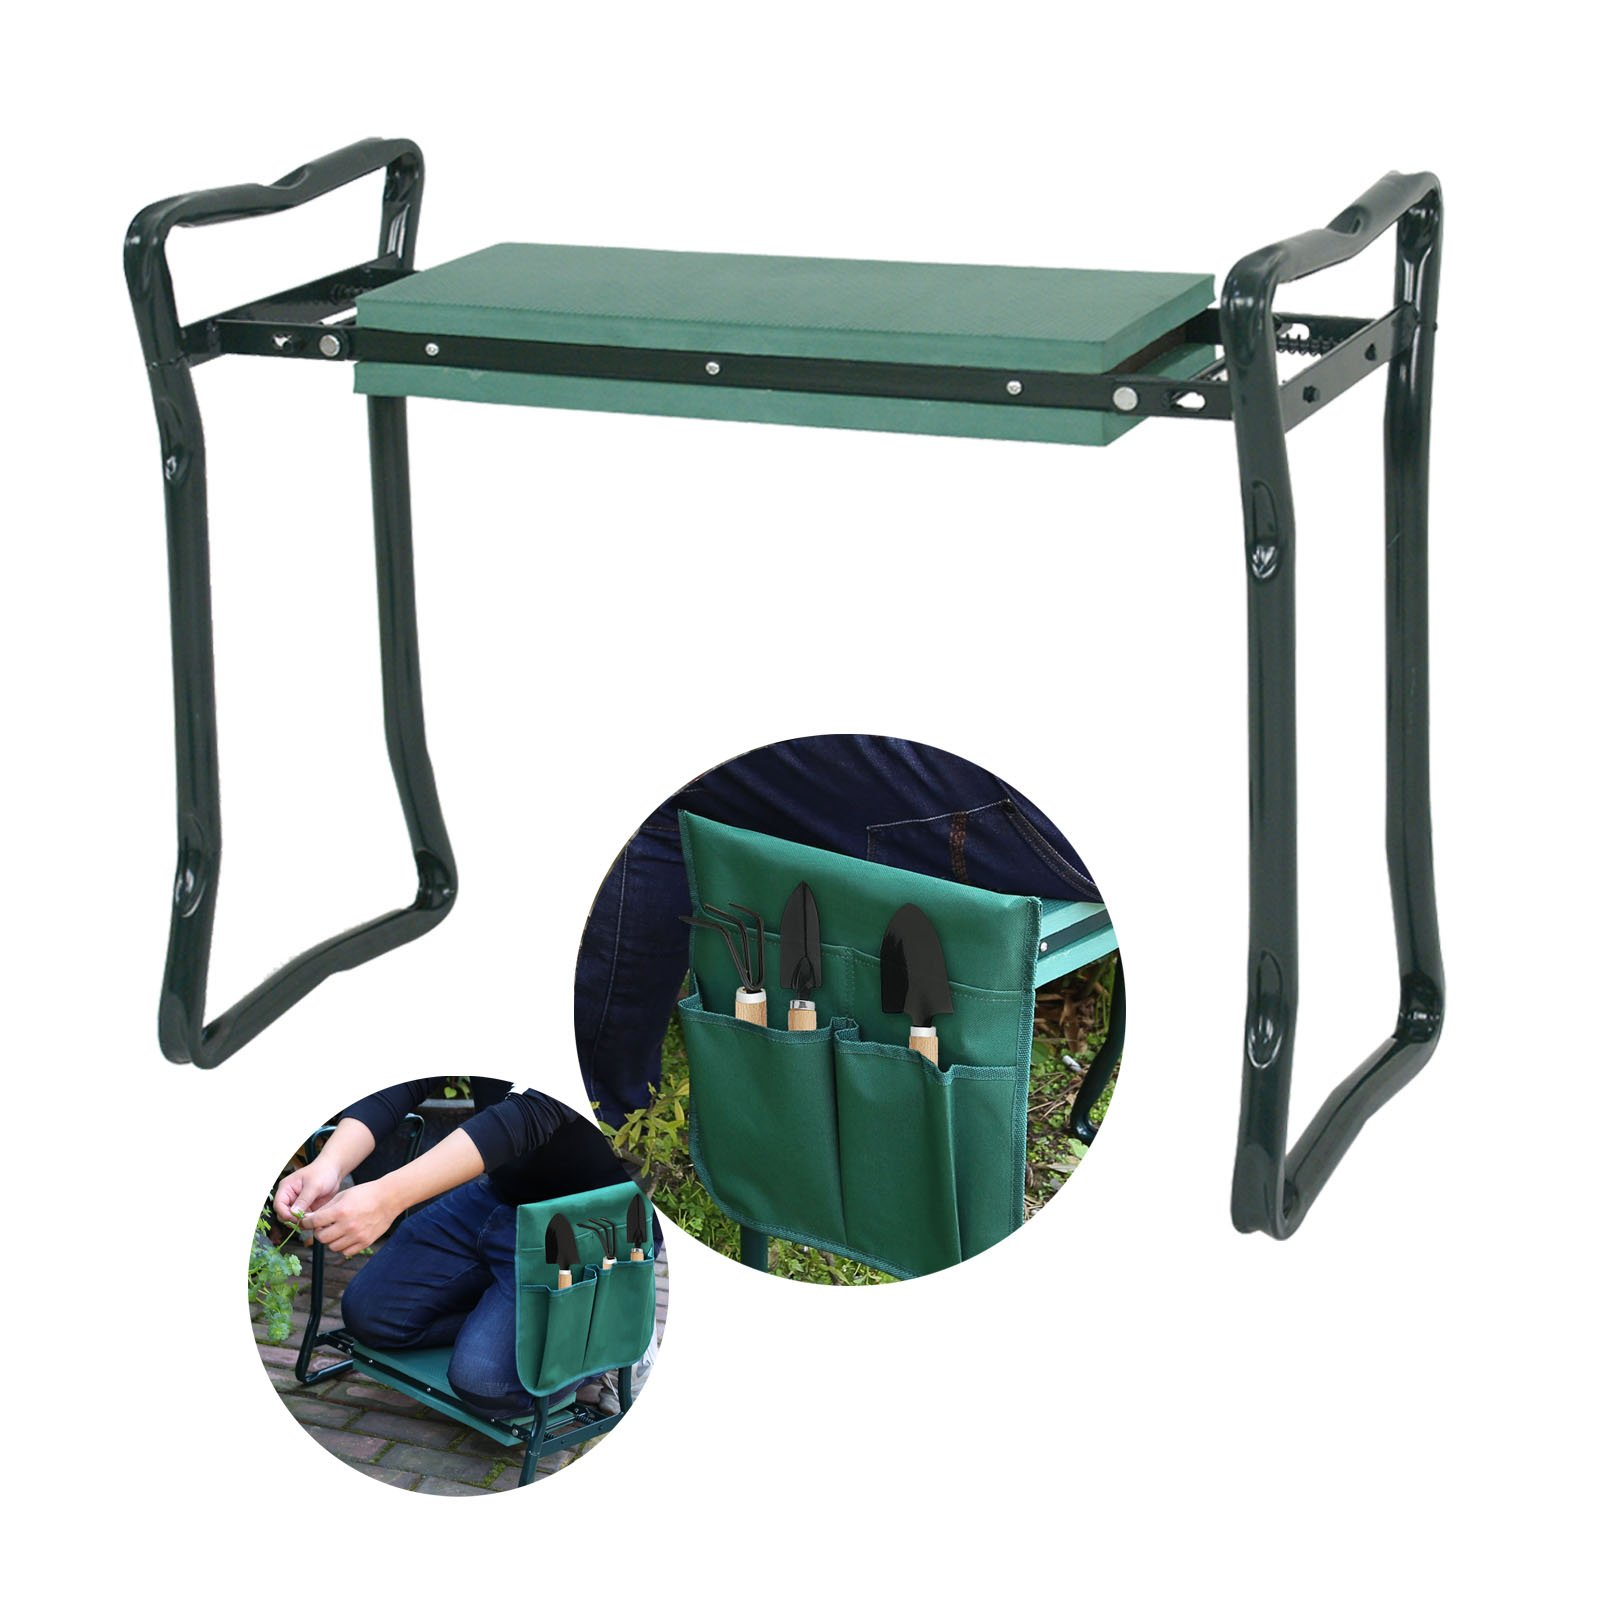 Smartxchoices Foldable Garden Kneeler Seat Bench with Pouch, Handles Multi-use Gardening Stool with Soft Kneeling Pad Heavy Duty,Green